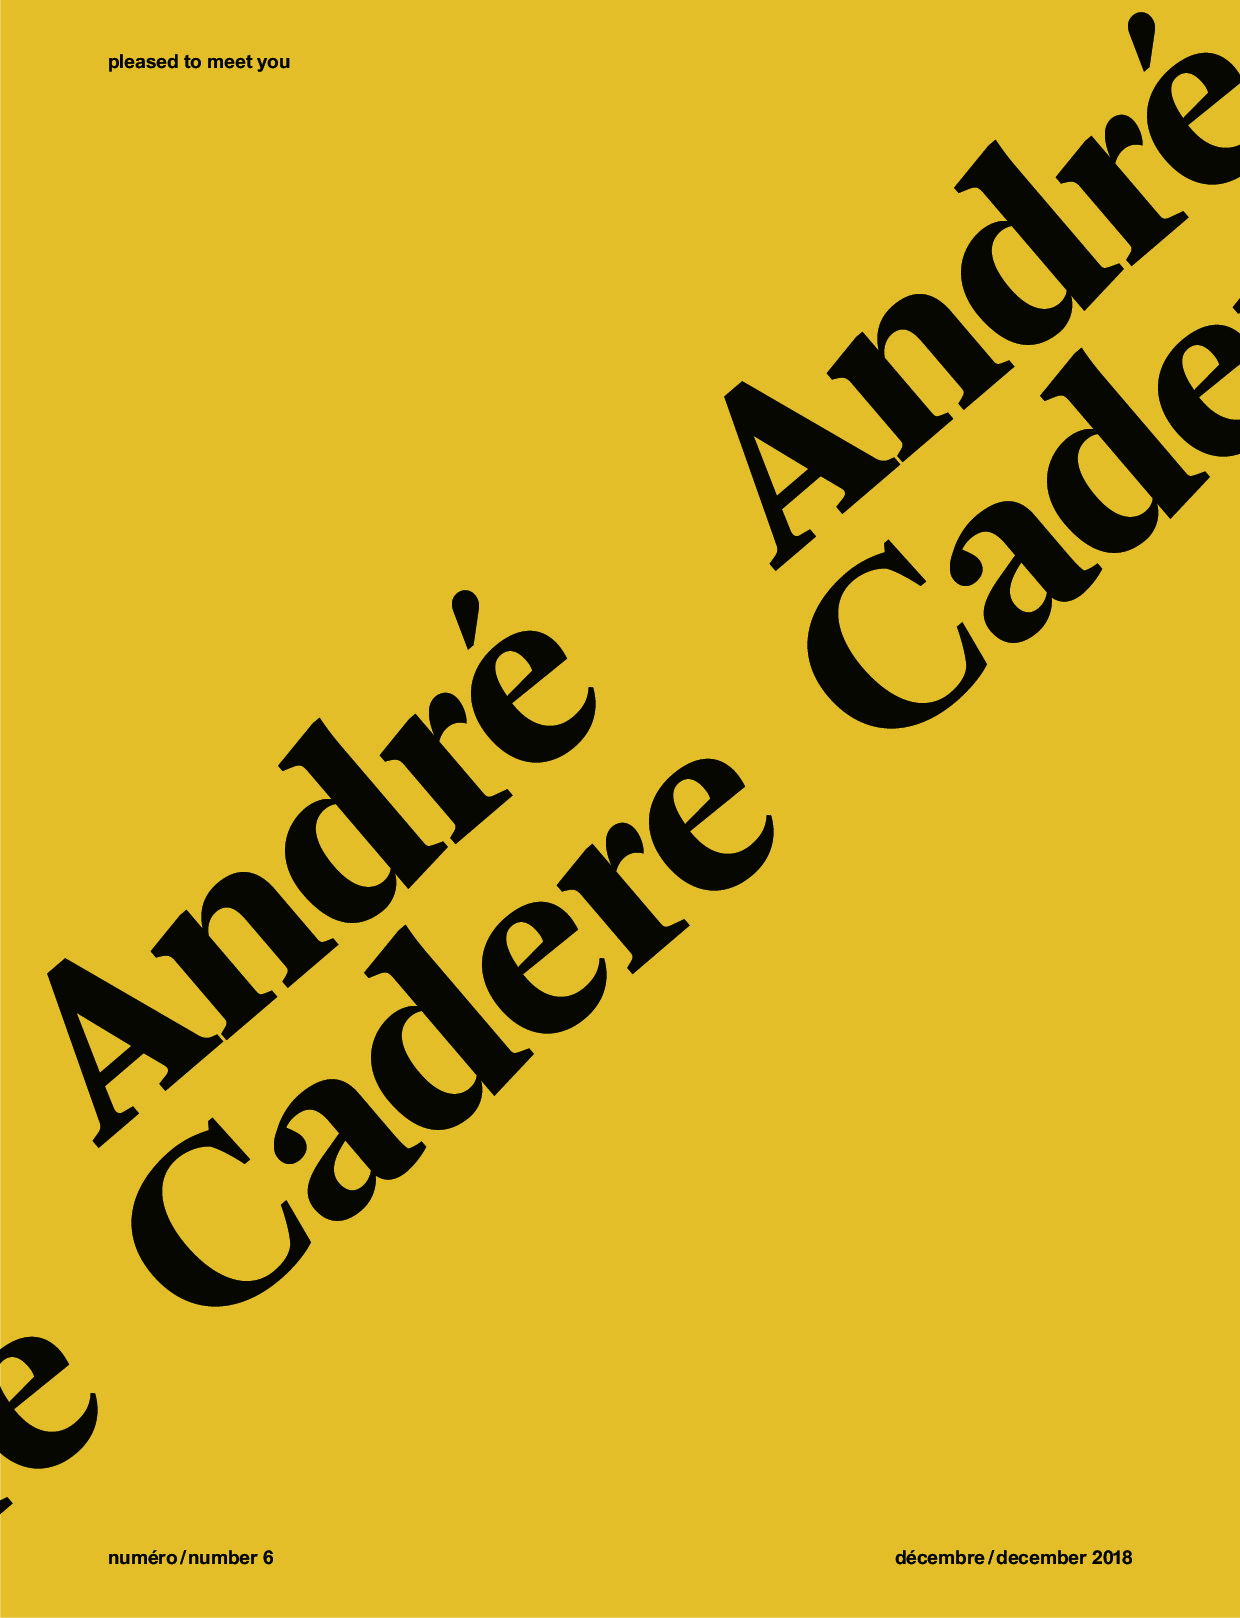 Pleased to meet you 6 - André Cadere